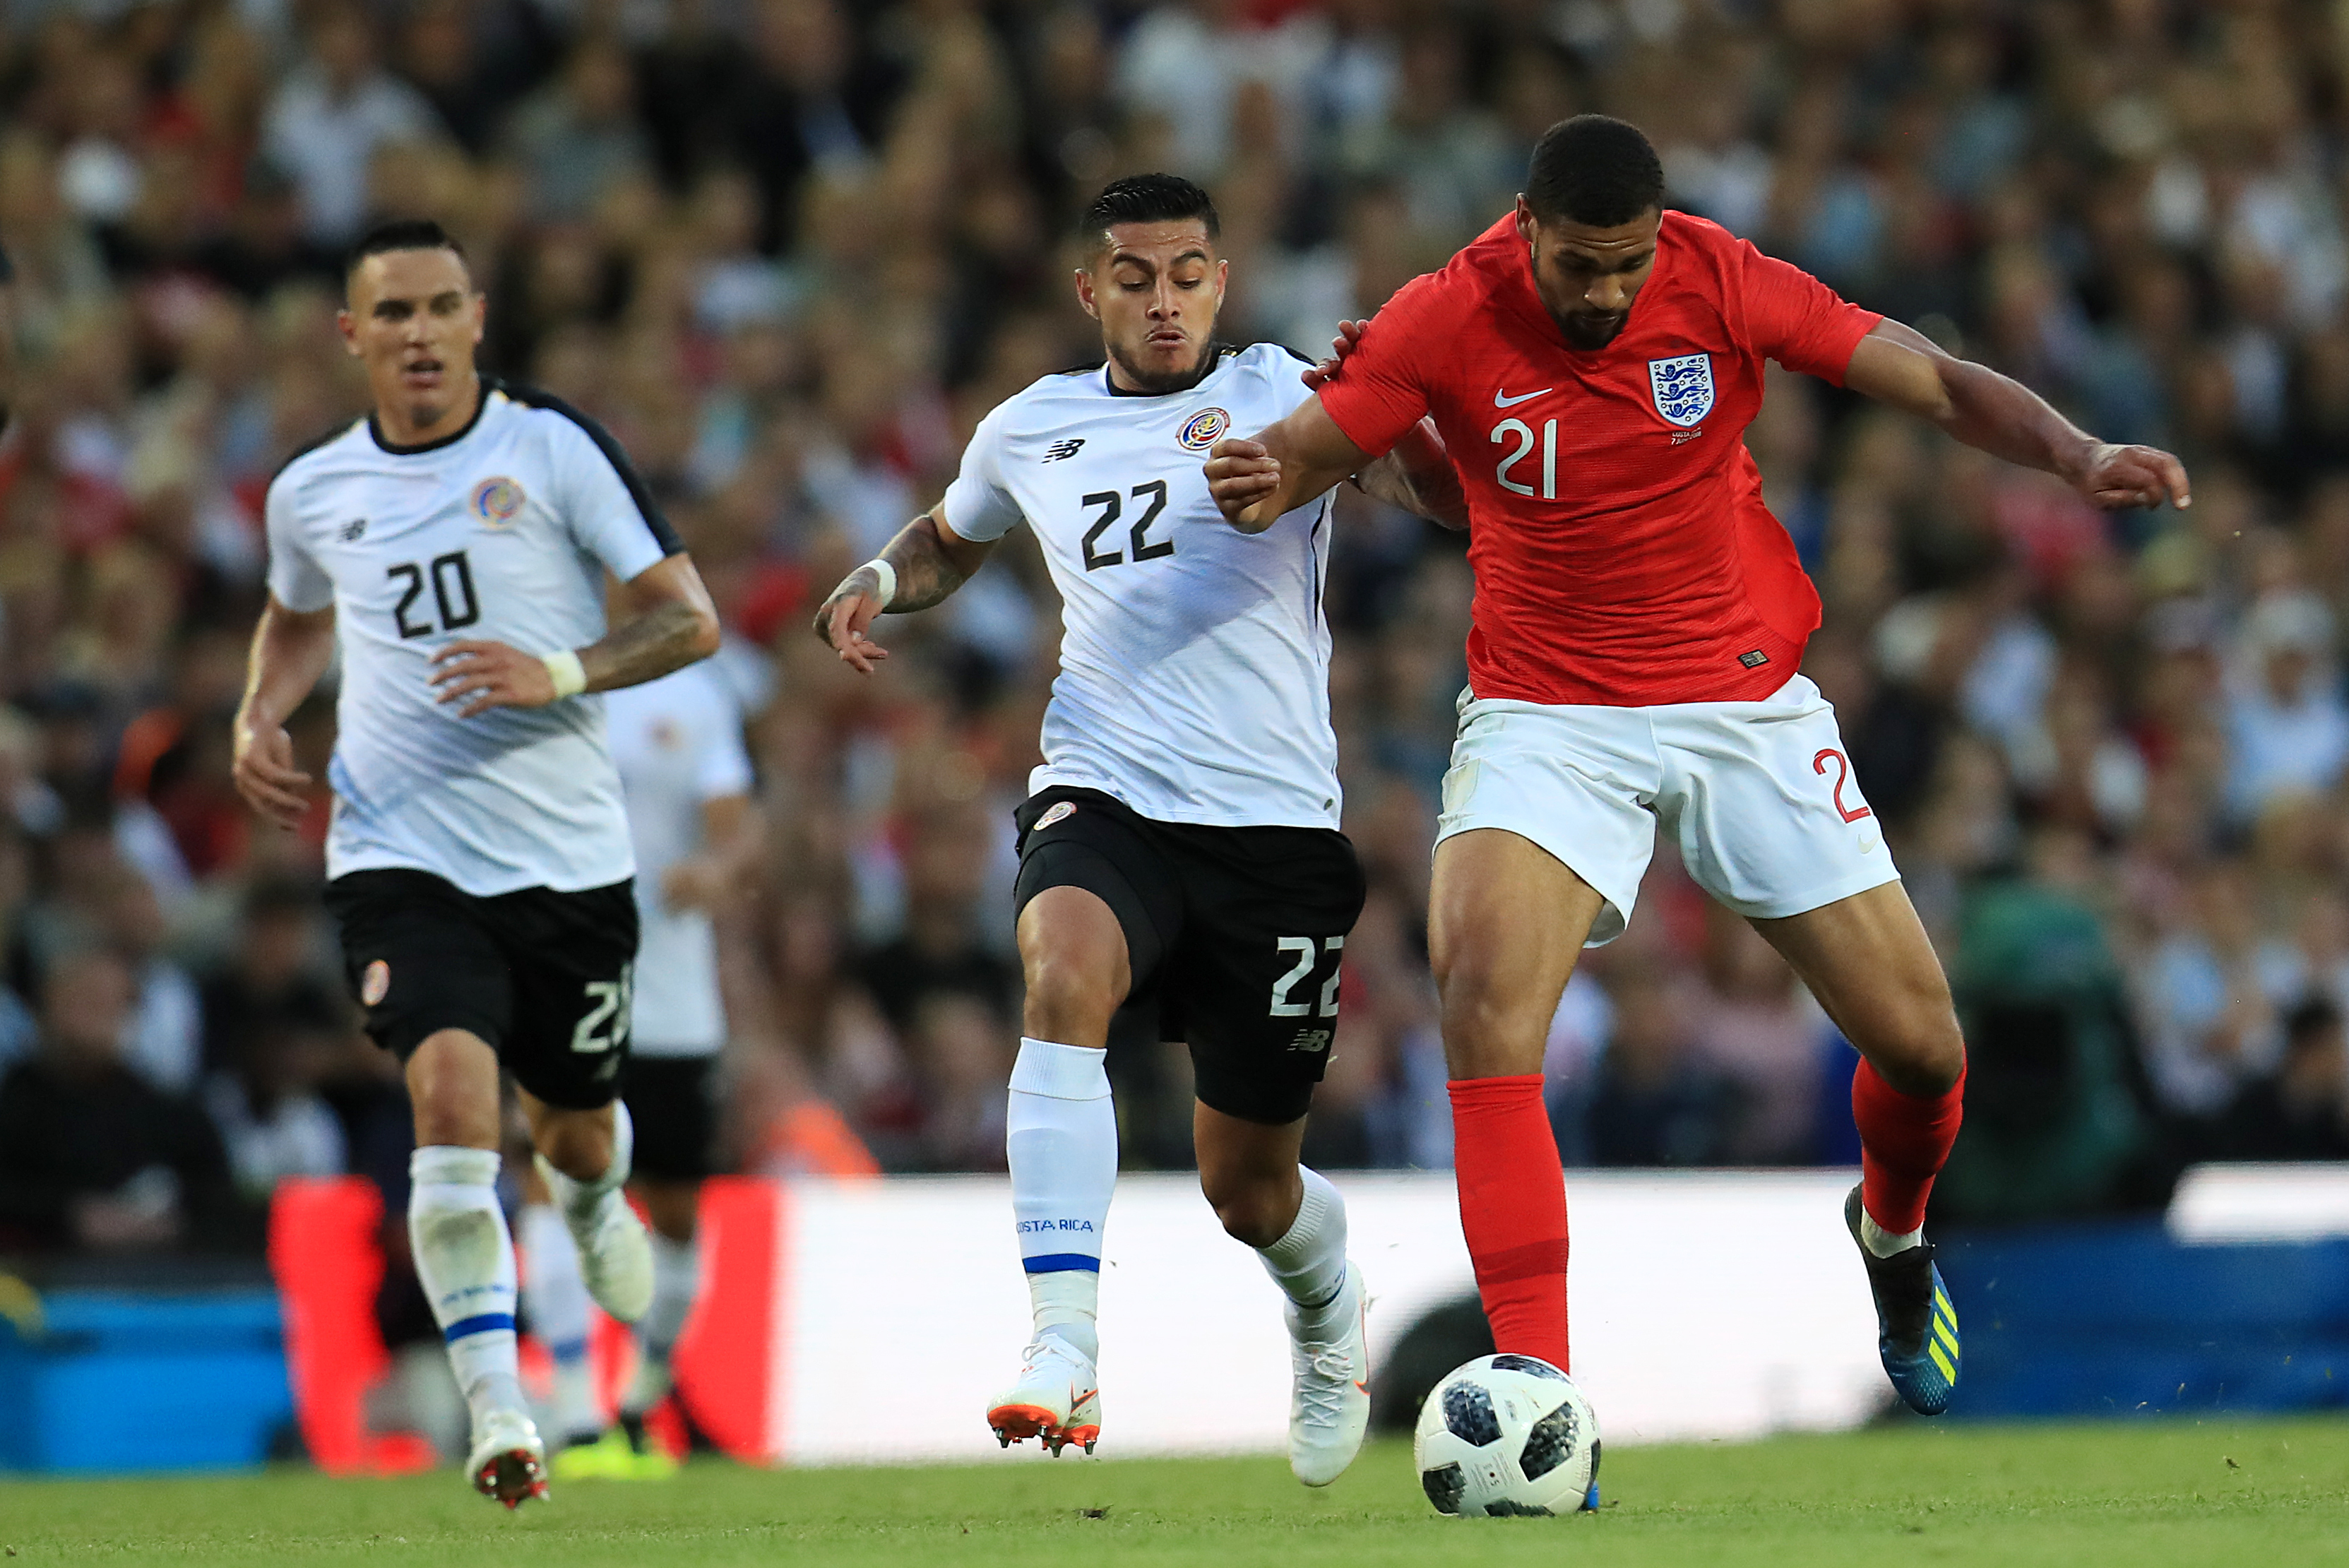 Loftus-Cheek in action for England. Image: PA